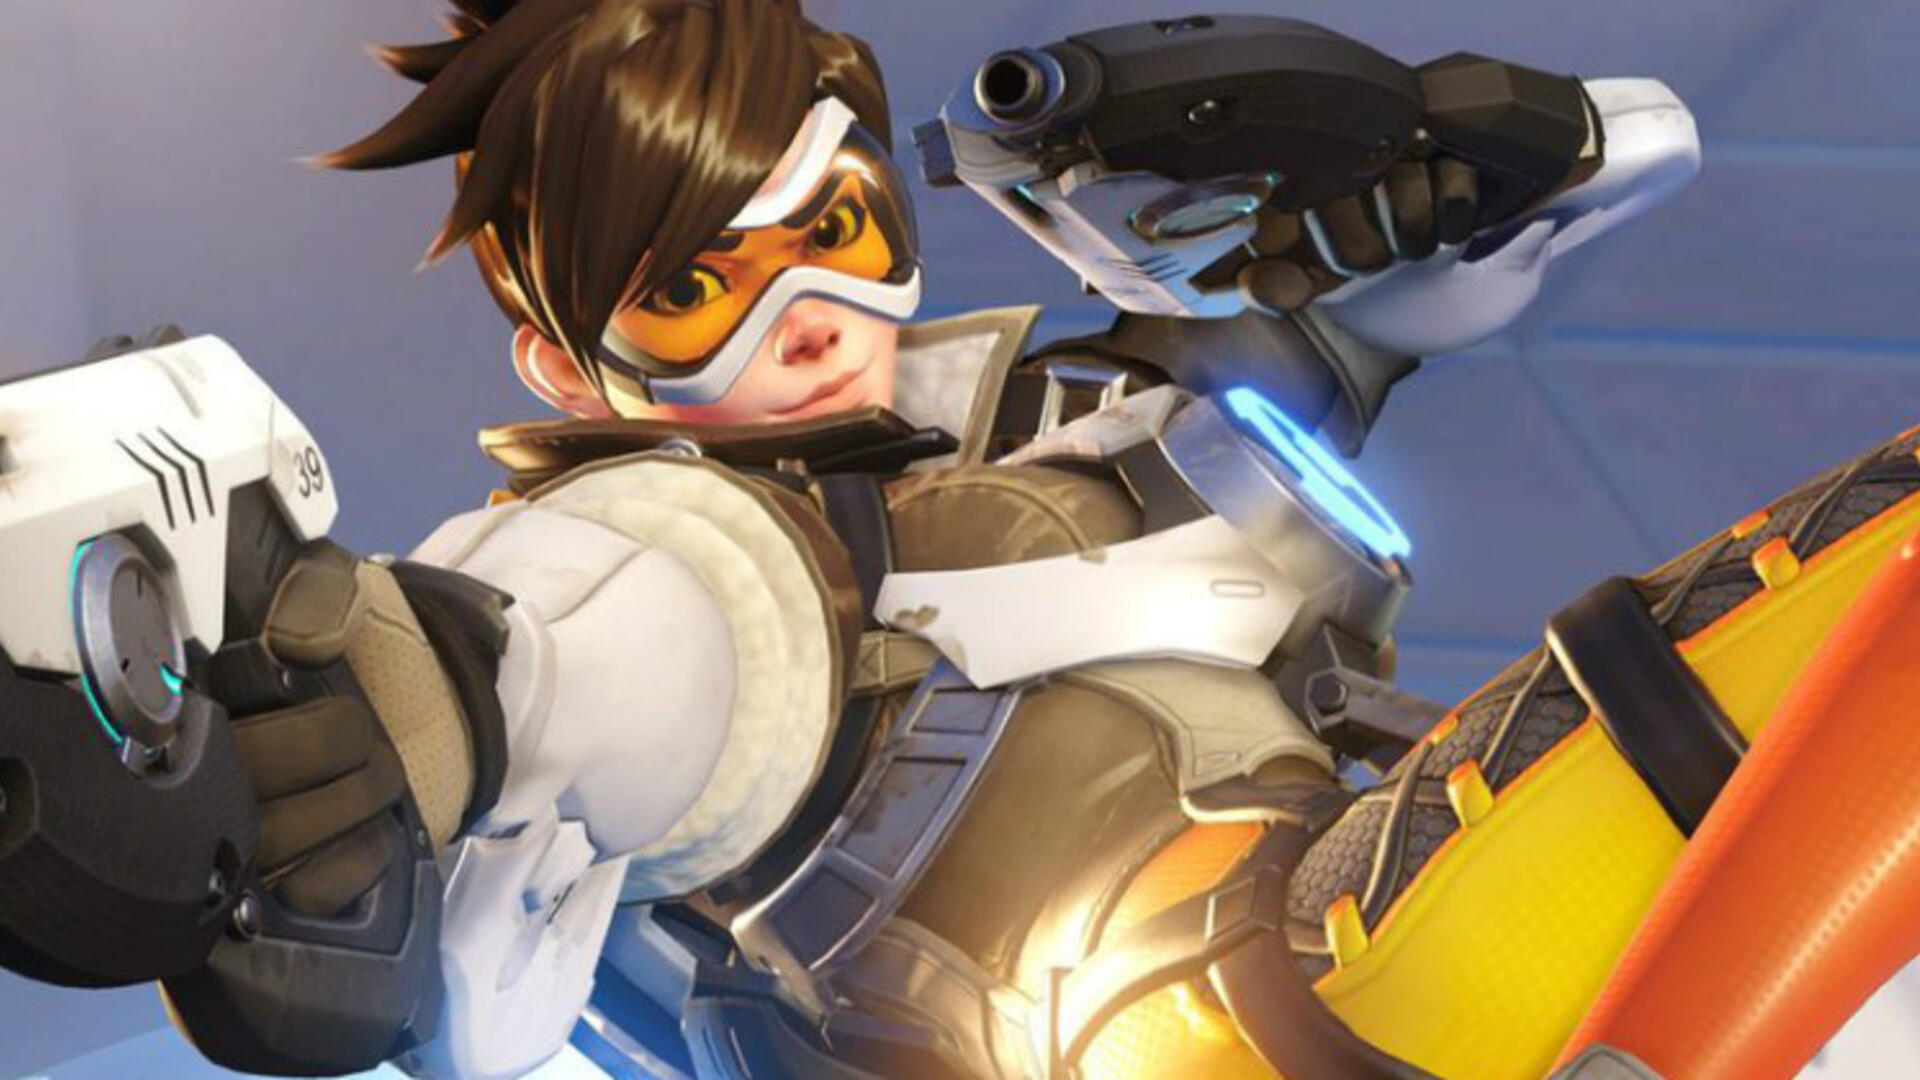 Blizzard China Is Suing a Developer Over an Overwatch Clone